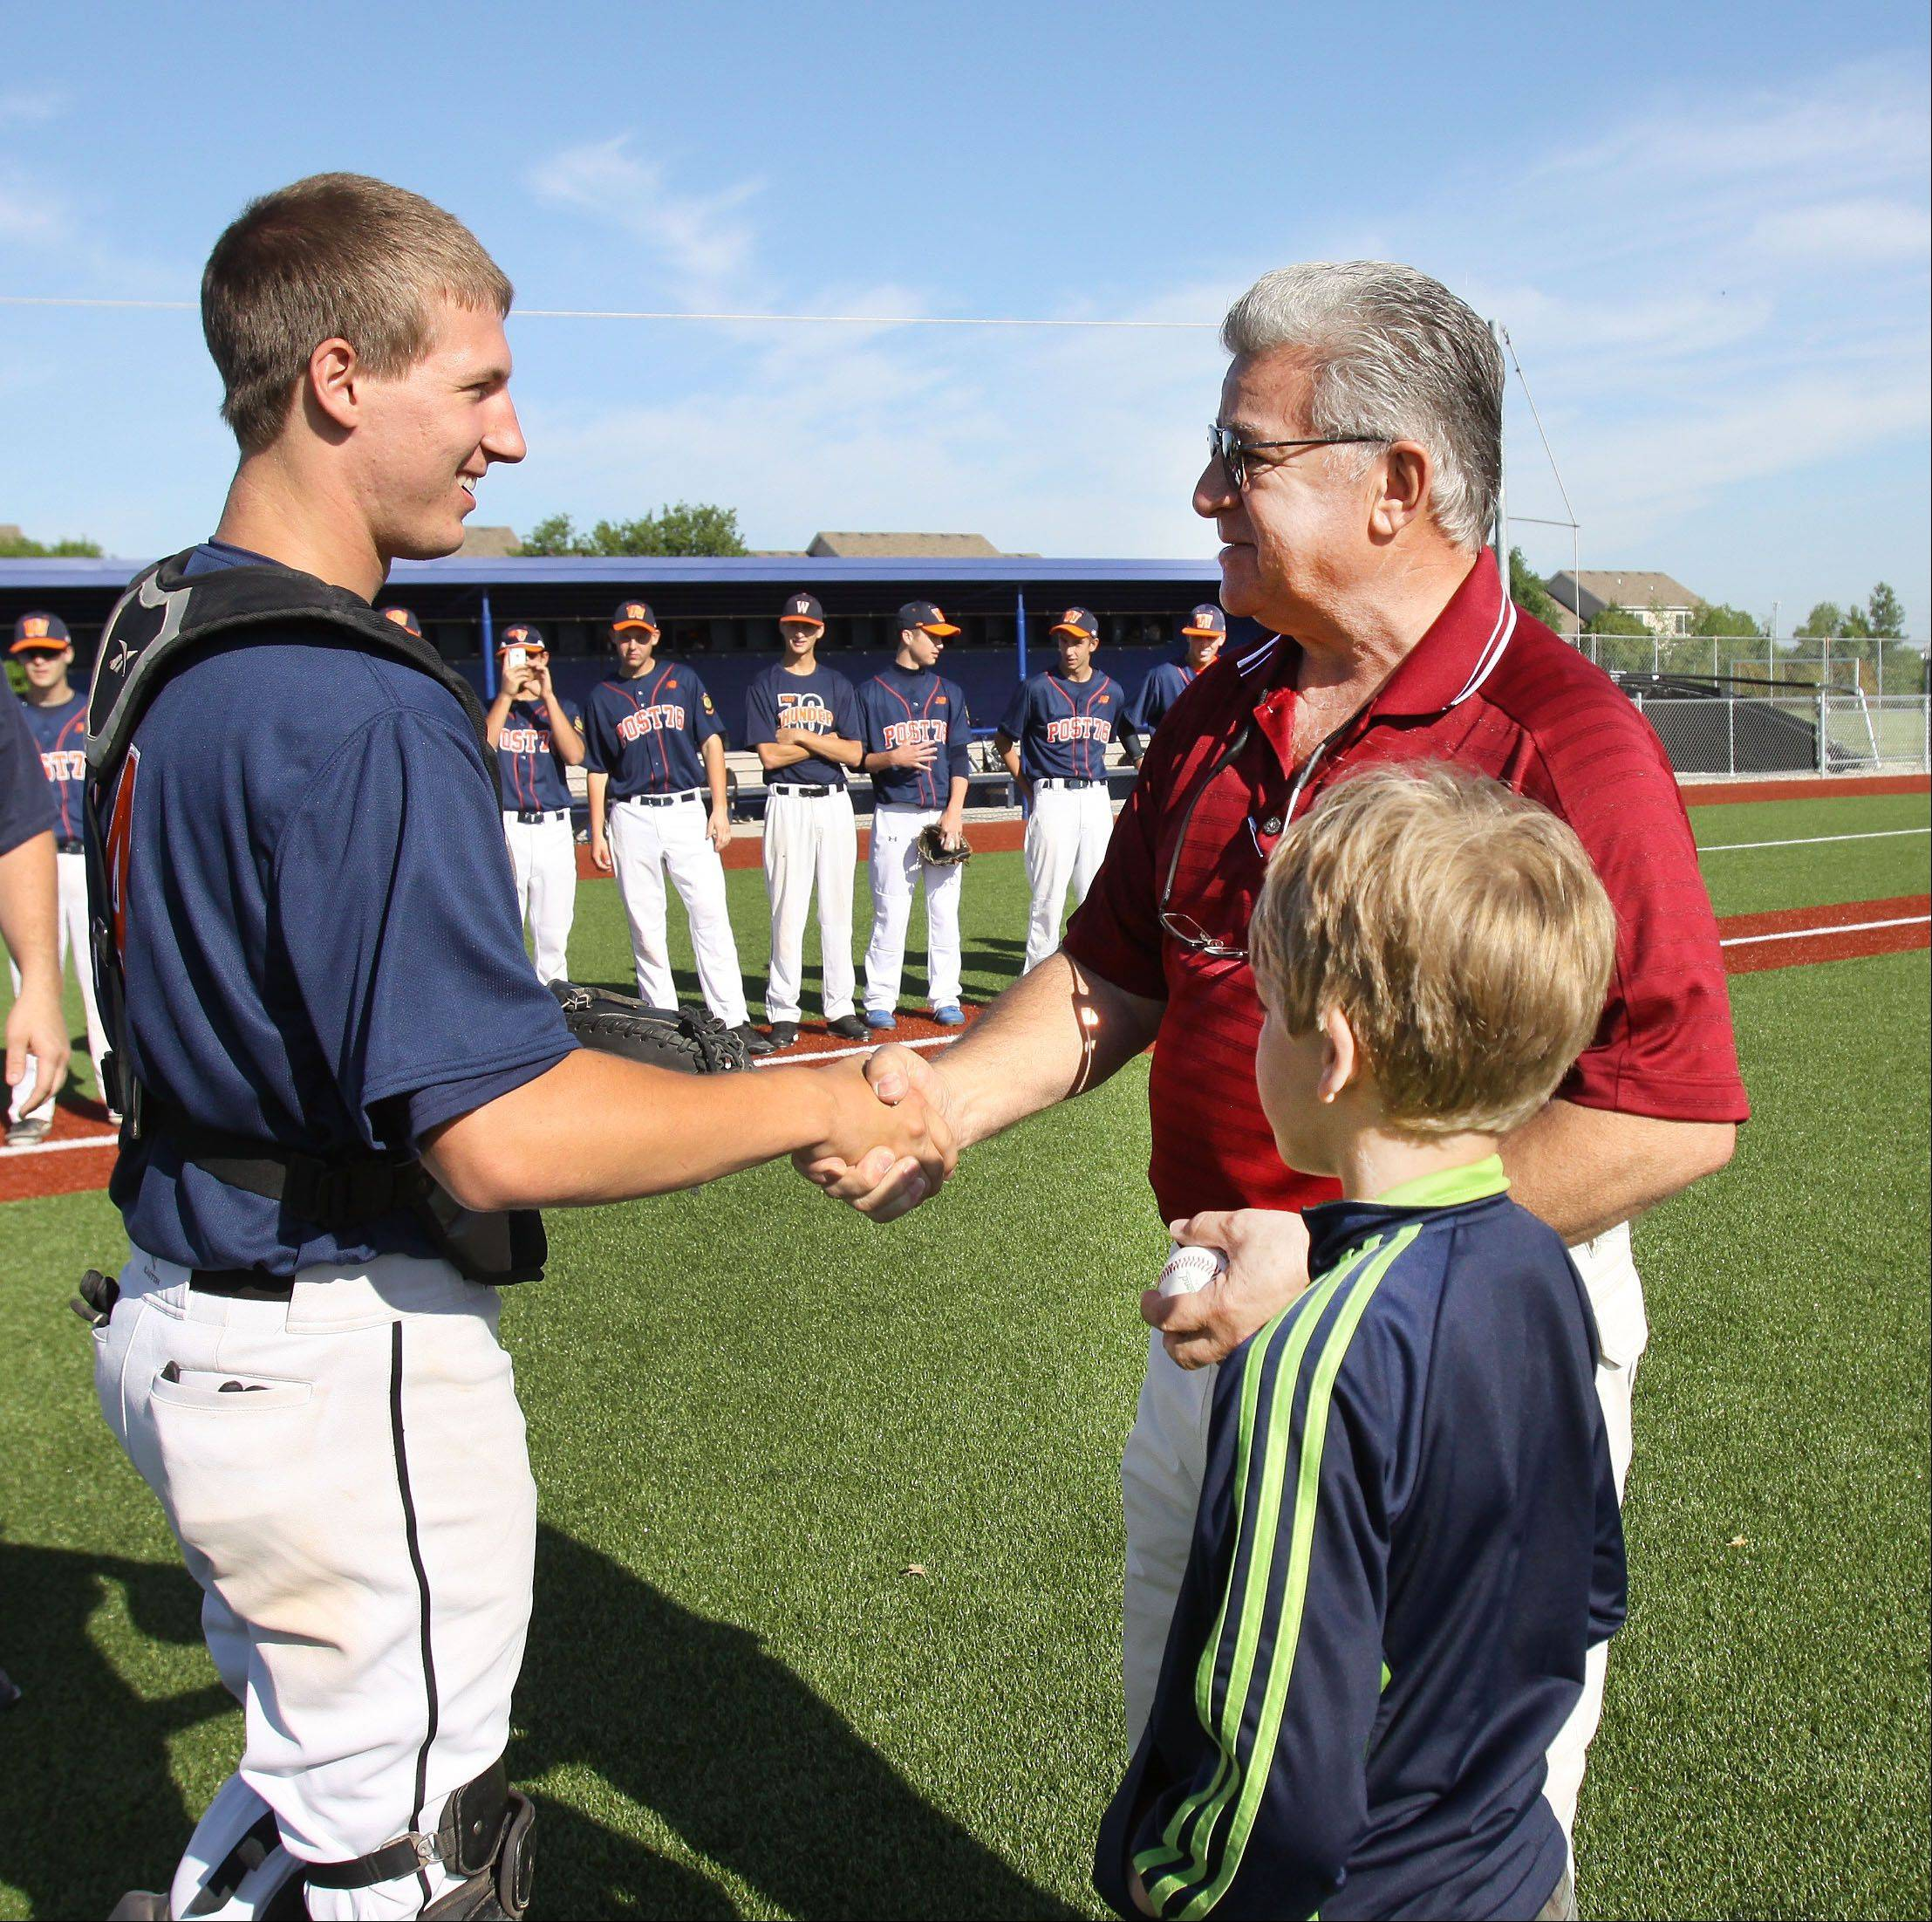 Carol Stream Village President Frank Saverino and his 7-year-old grandson, Dominic, talk with American Legion Post 76 baseball team catcher Jeff LaPage of Glenbard North Friday after throwing ceremonial first pitches at the opening of the post's Summer Classic Tournament.